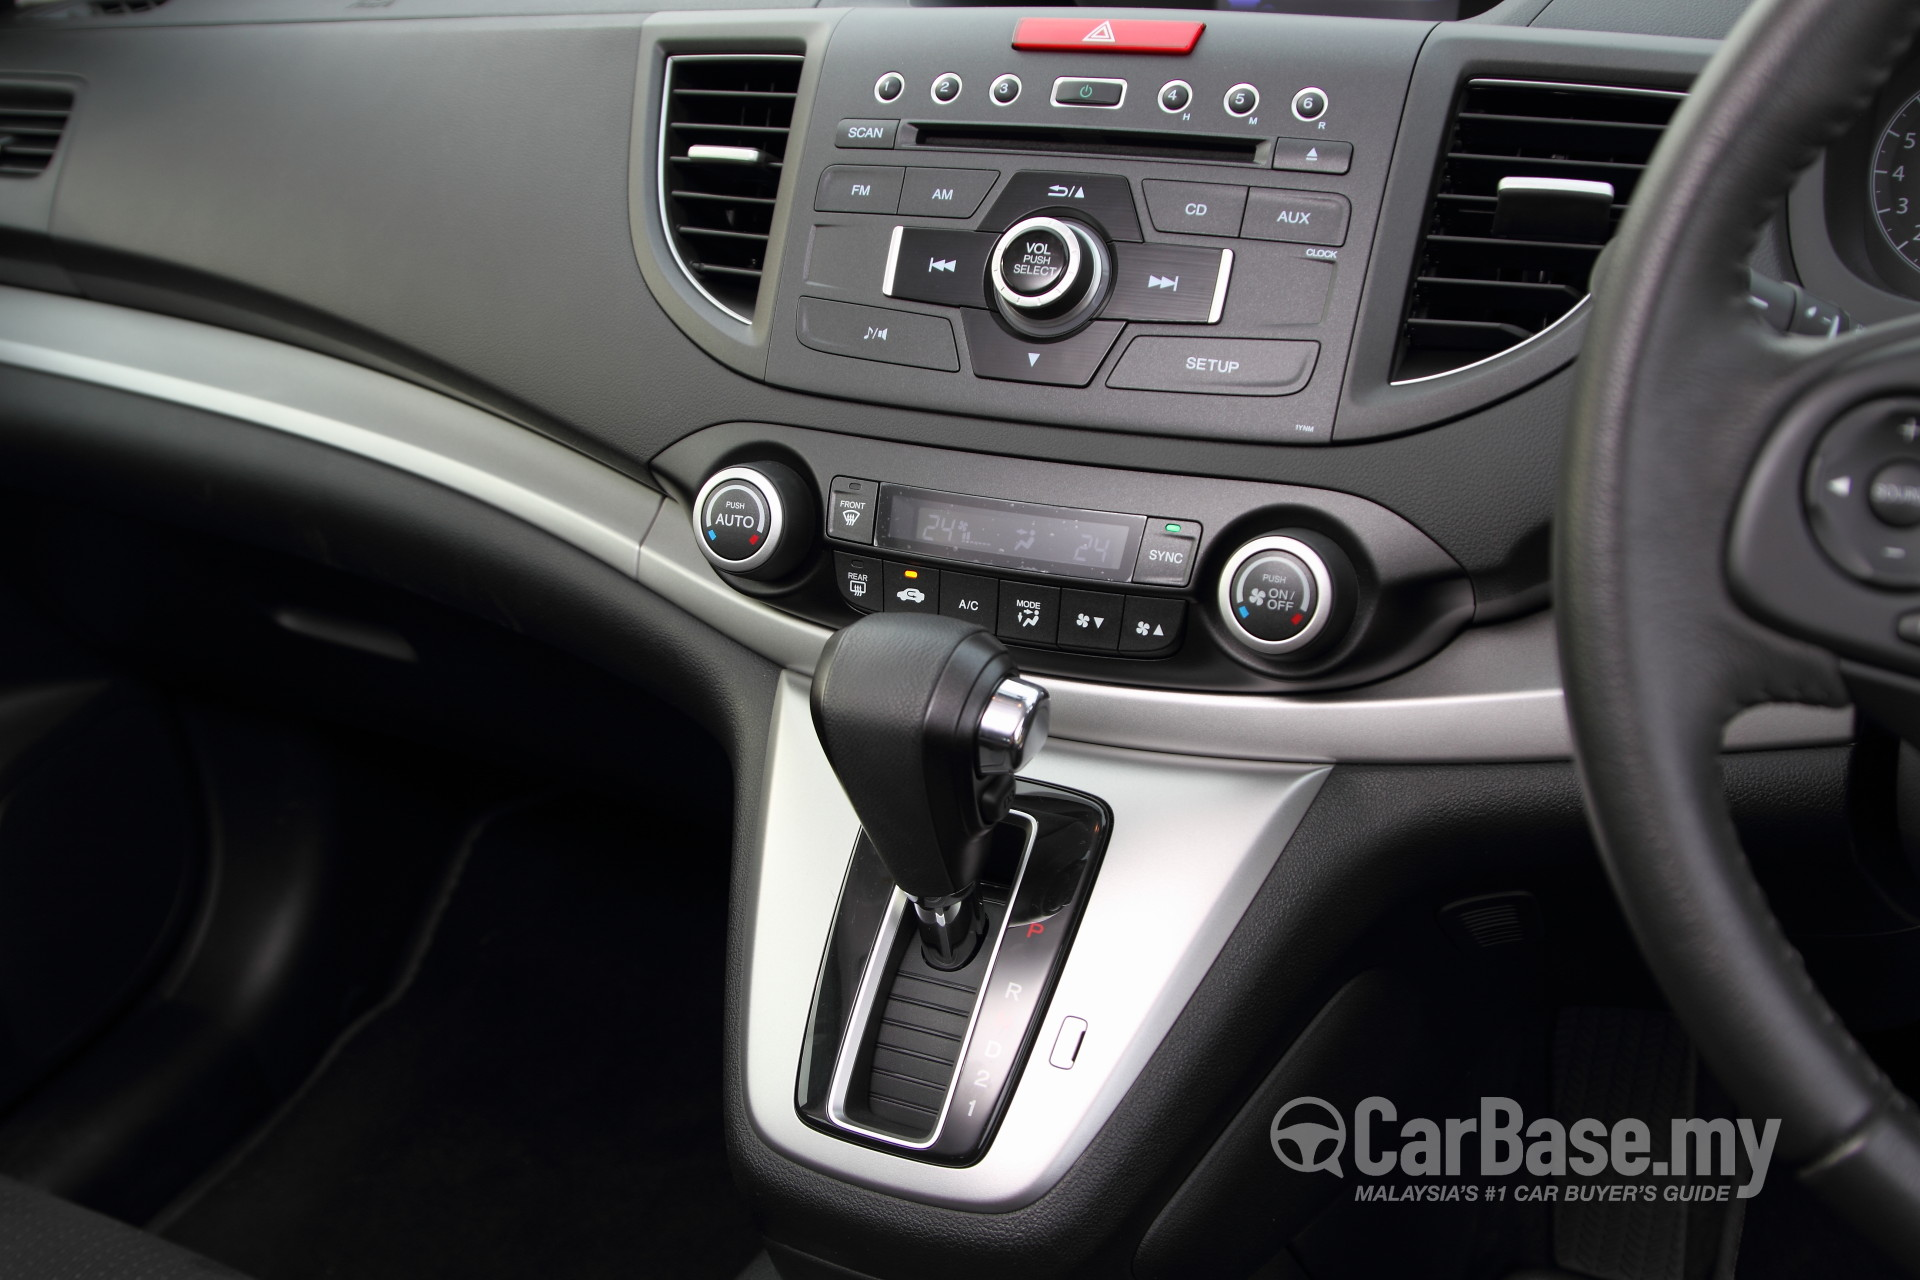 honda cr v rm 2013 interior image 7035 in malaysia reviews specs prices. Black Bedroom Furniture Sets. Home Design Ideas